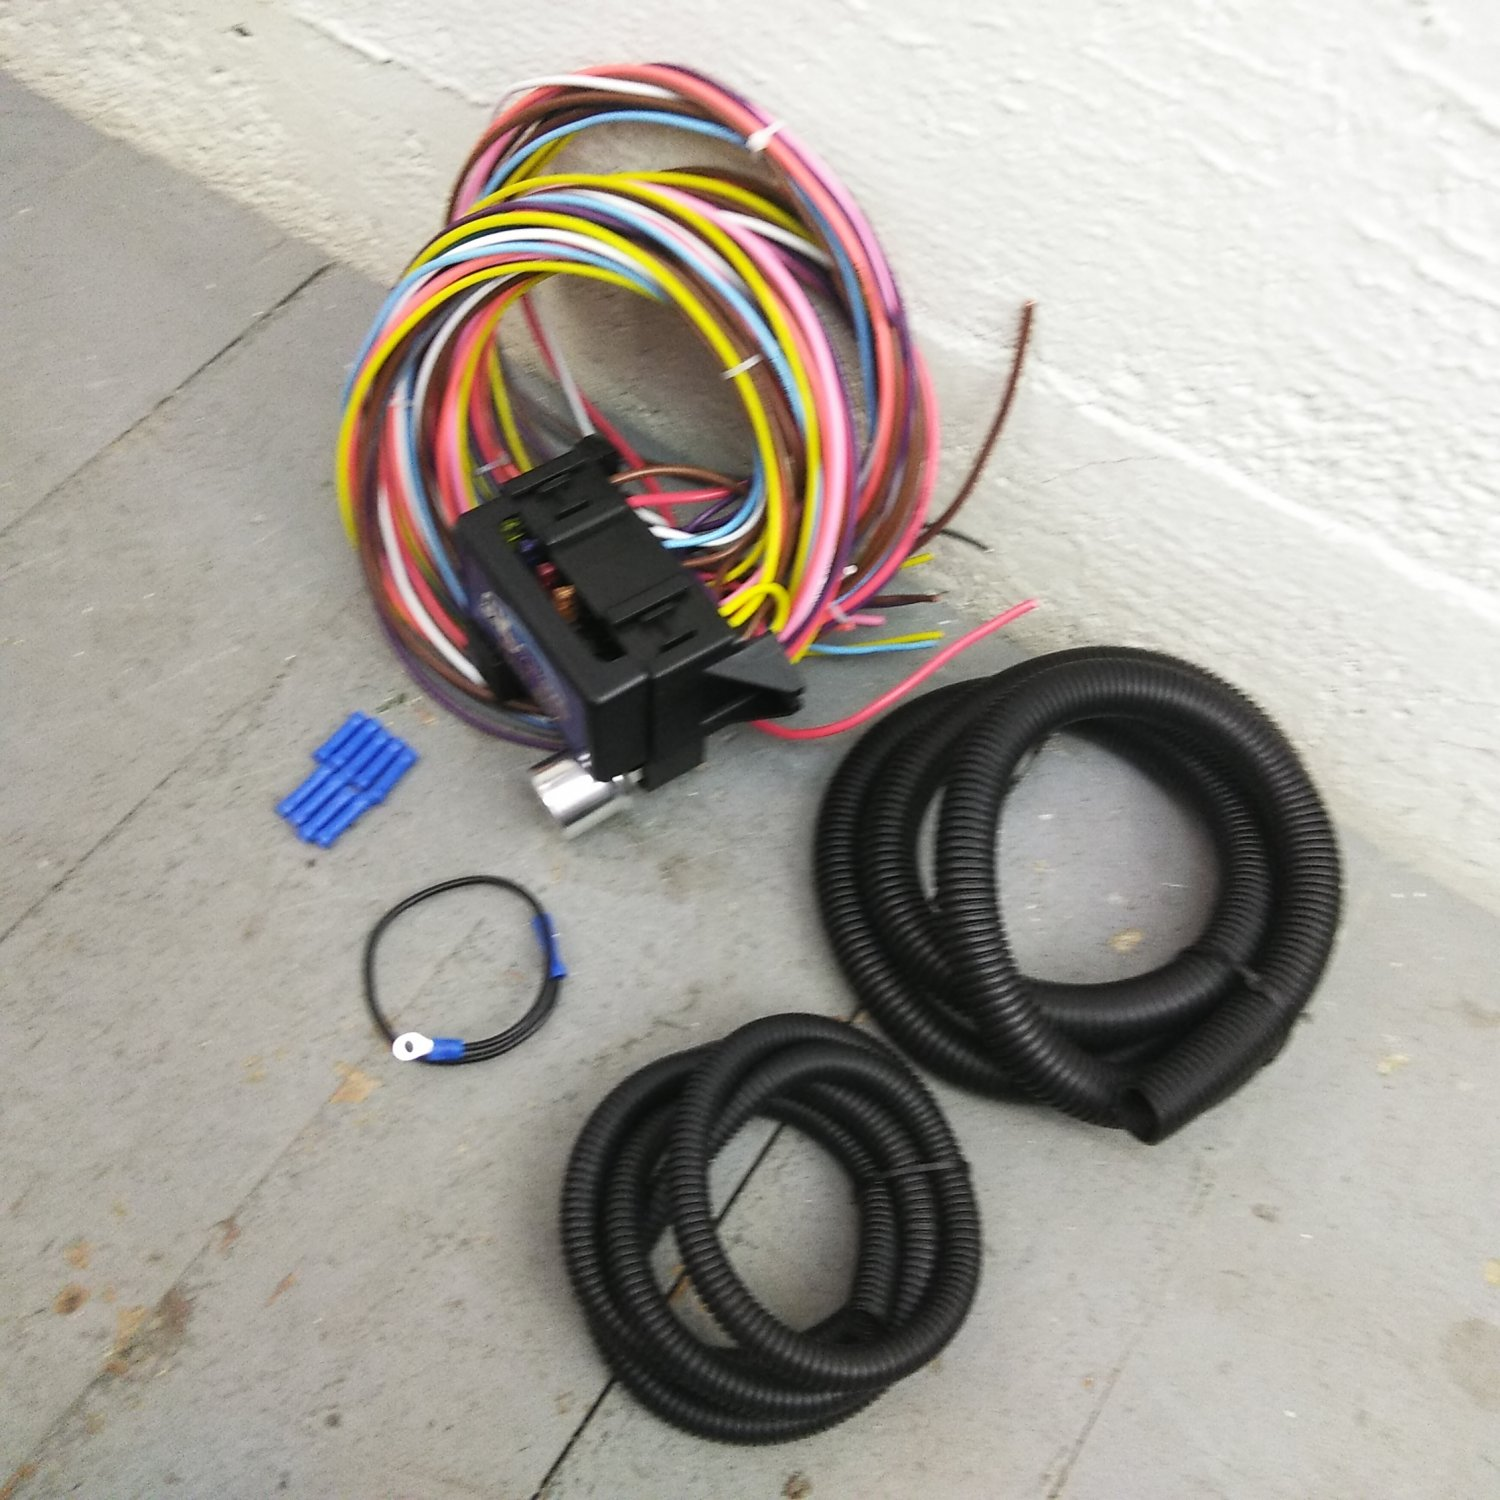 1955 1958 Mopar Chrysler 8 Circuit Wire Harness Fits Painless Fuse Home Box 1957 Block New